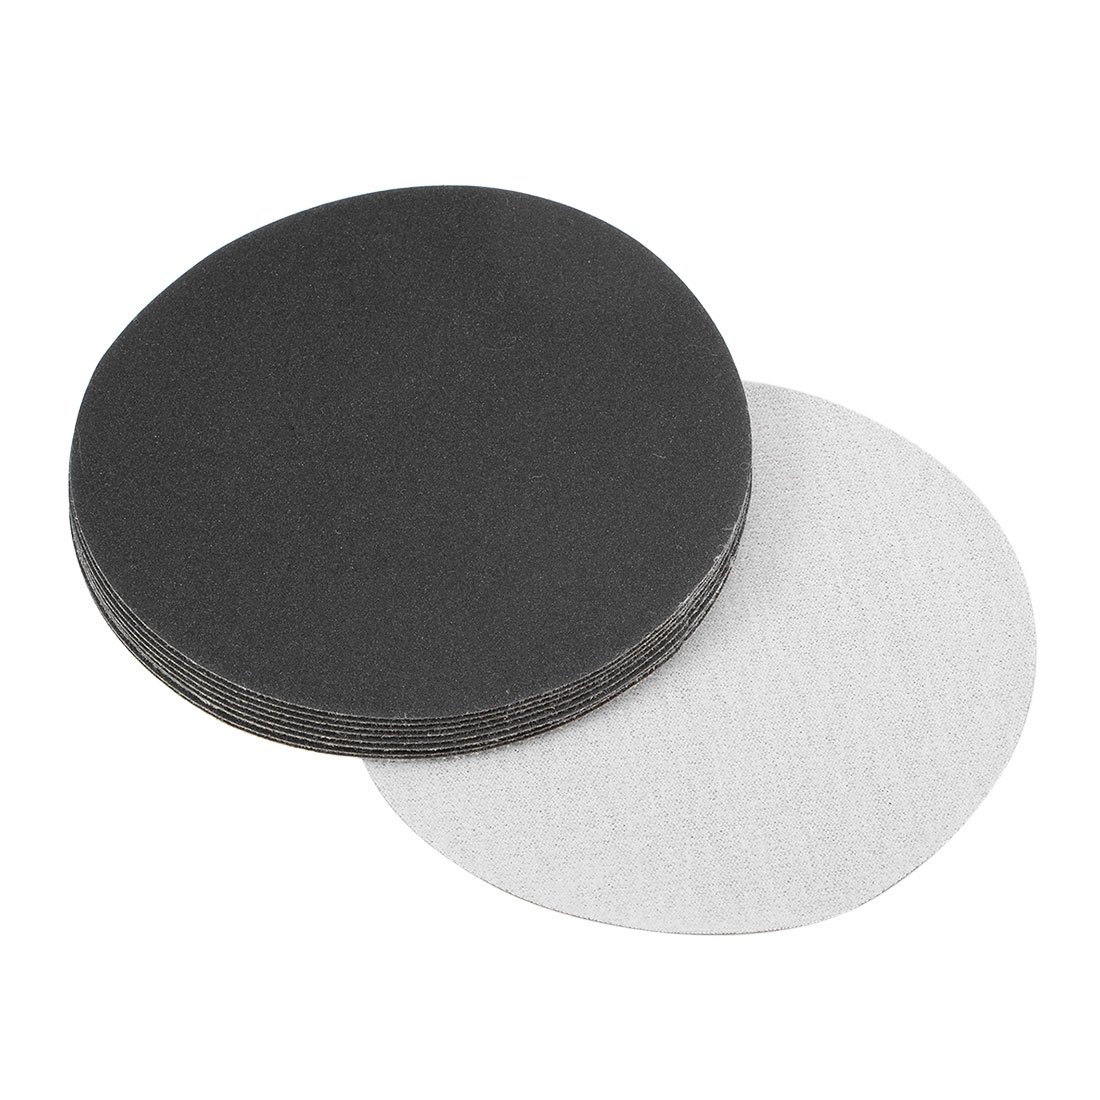 5 inch Wet Dry Discs 240 Grit Hook and Loop Sanding Disc Silicon Carbide 10pcs